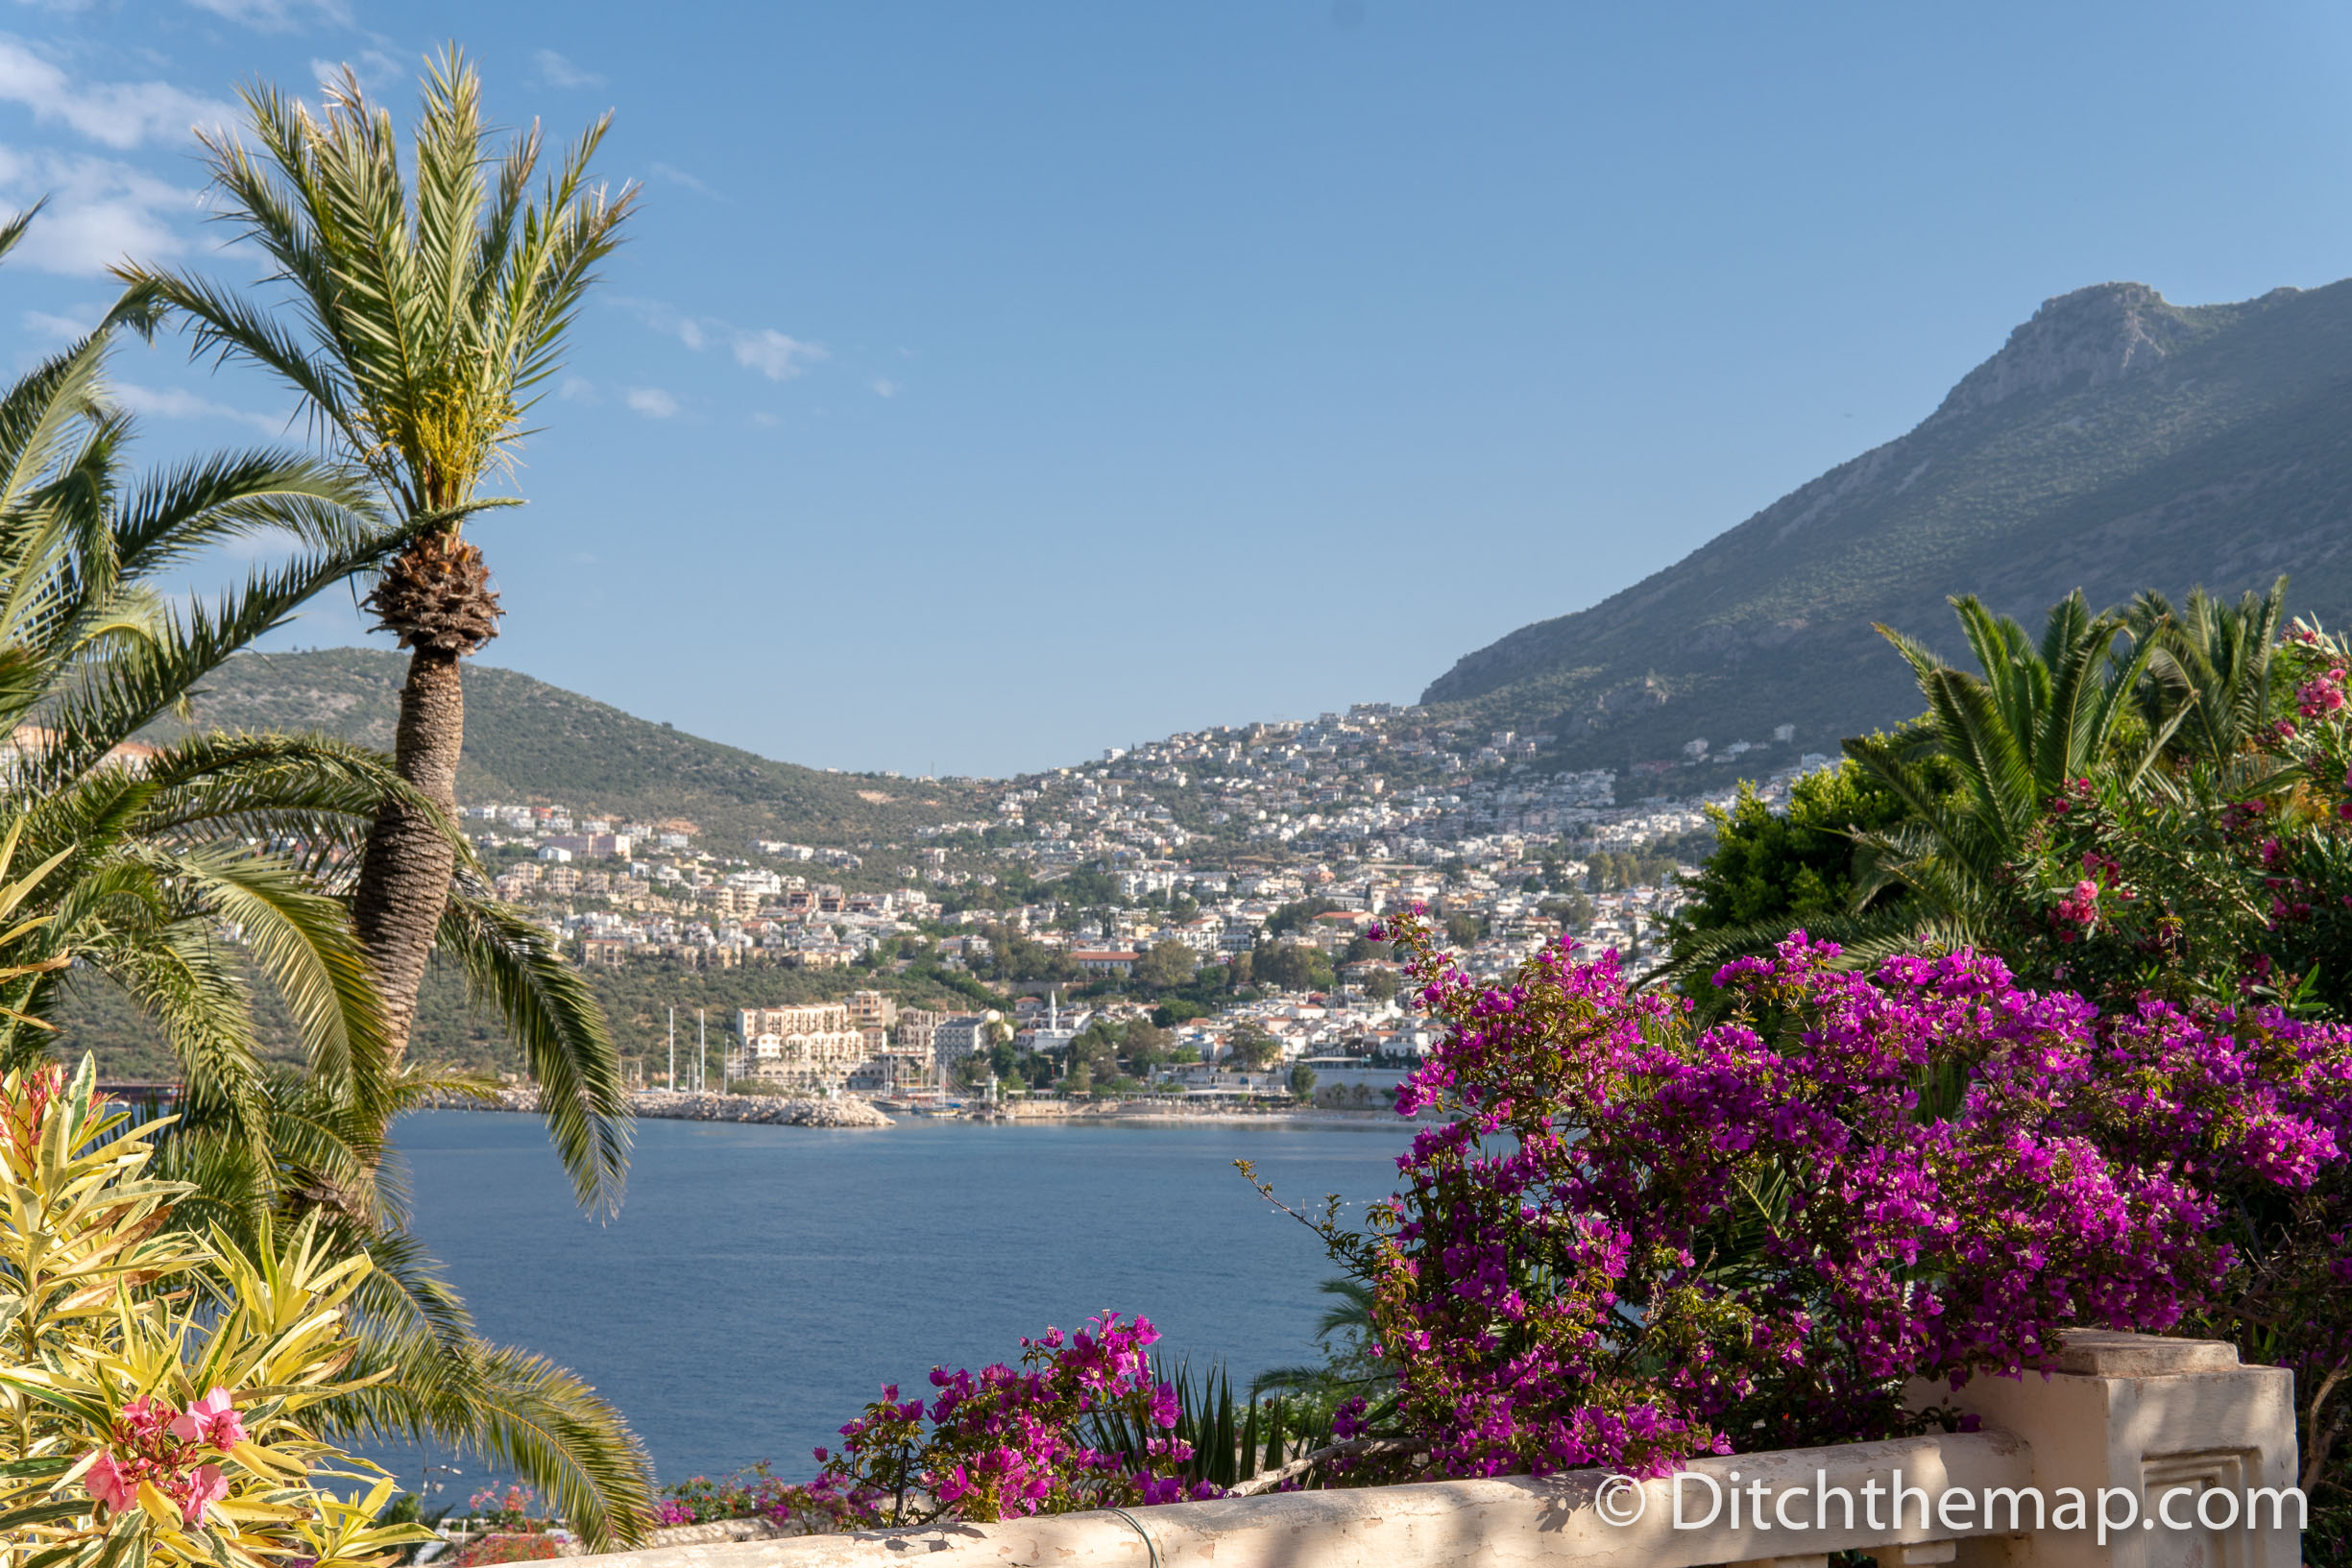 A View of Kalkan, Turkey From Across the Bay